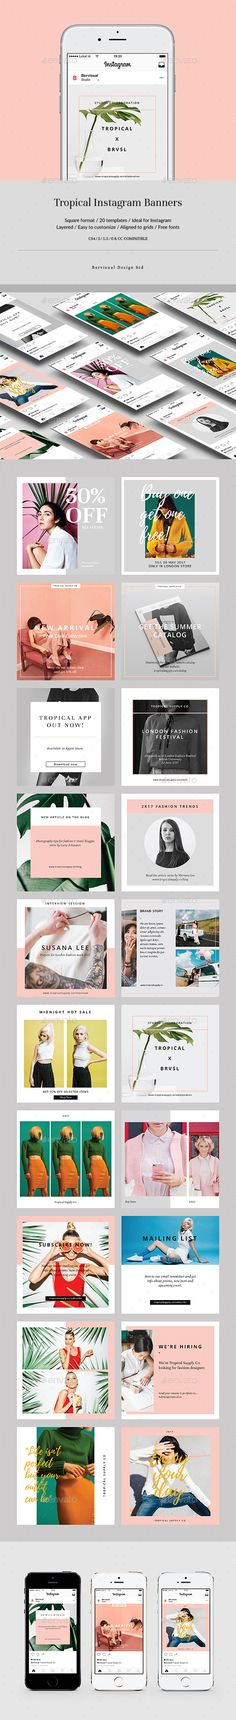 Tropical Instagram Banners - #Social Media #Web Elements Download here: https://graphicriver.net/item/tropical-instagram-banners/19503318?ref=alena994